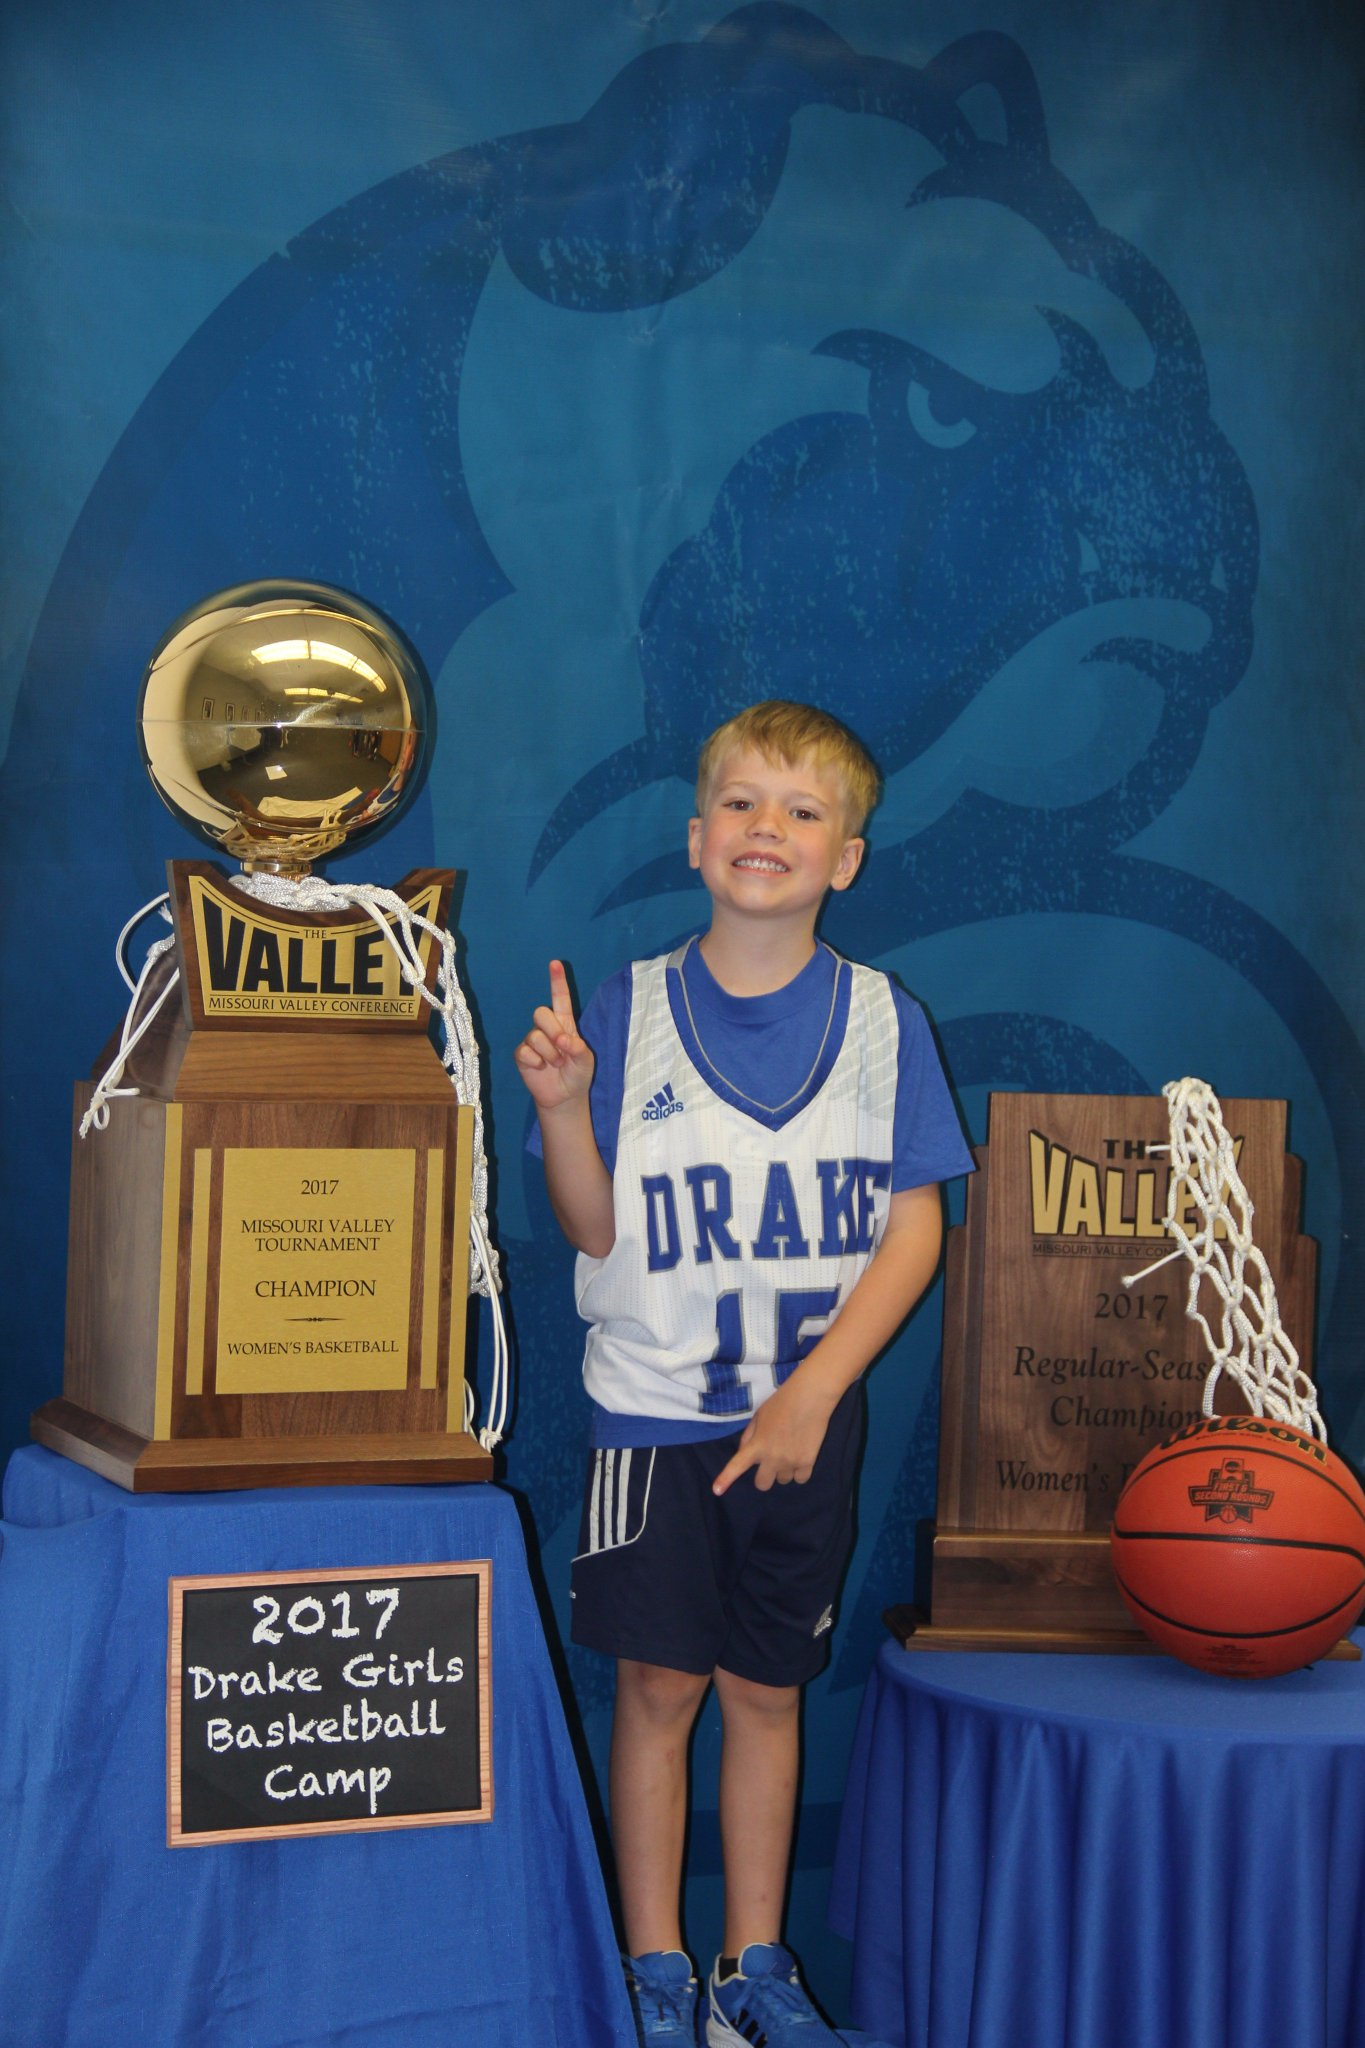 Drake Women S Hoops On Twitter We Decided To Spice Up The Drakewbbcamps Photo Booth A Bit This Year Beblue